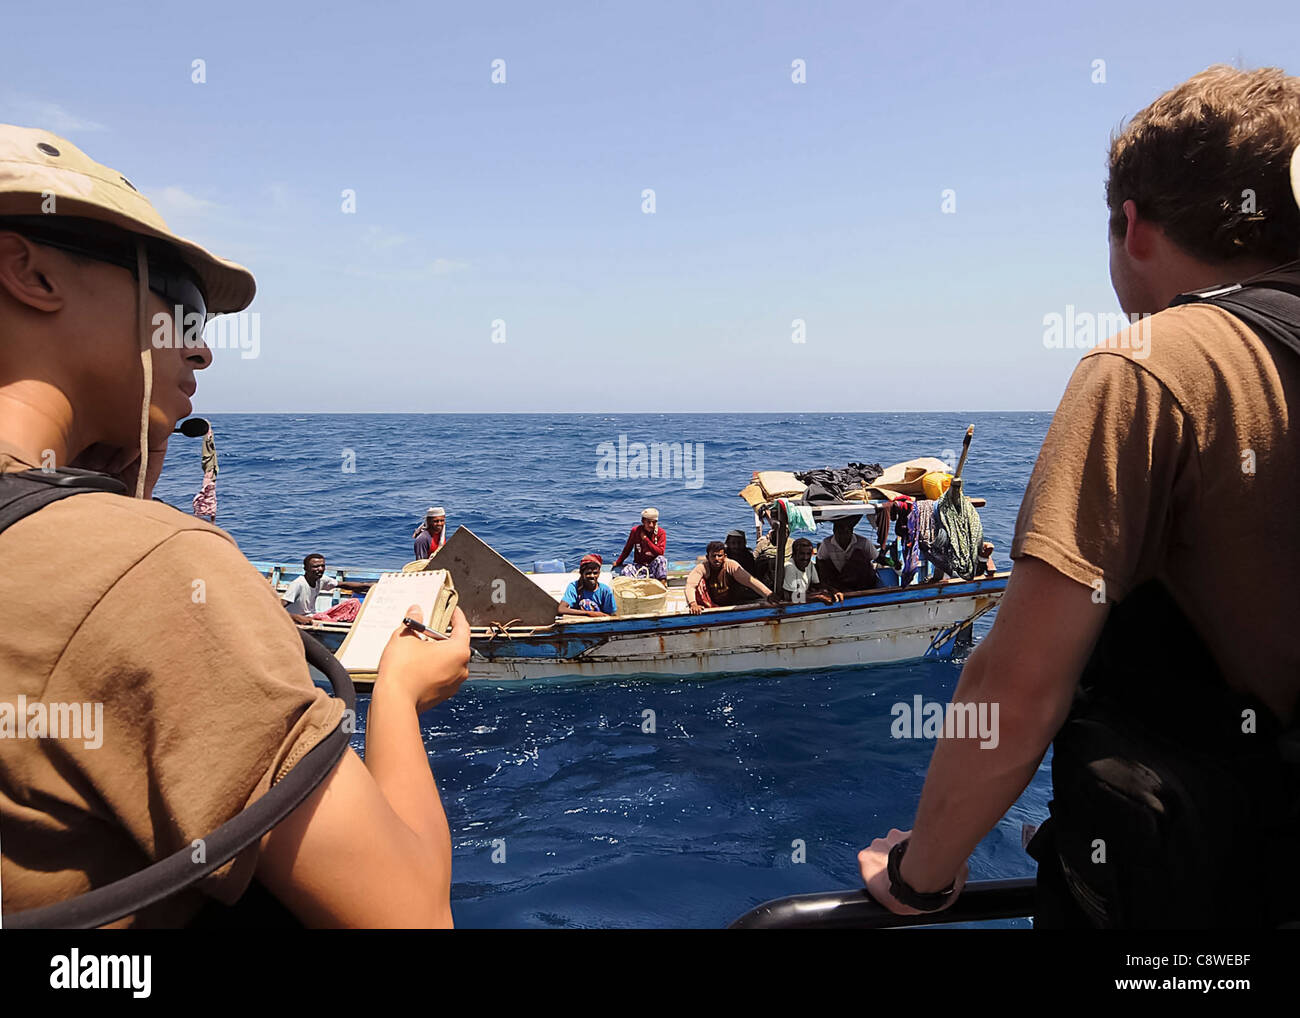 supporting maritime security operations and theater security cooperation operations. Stock Photo